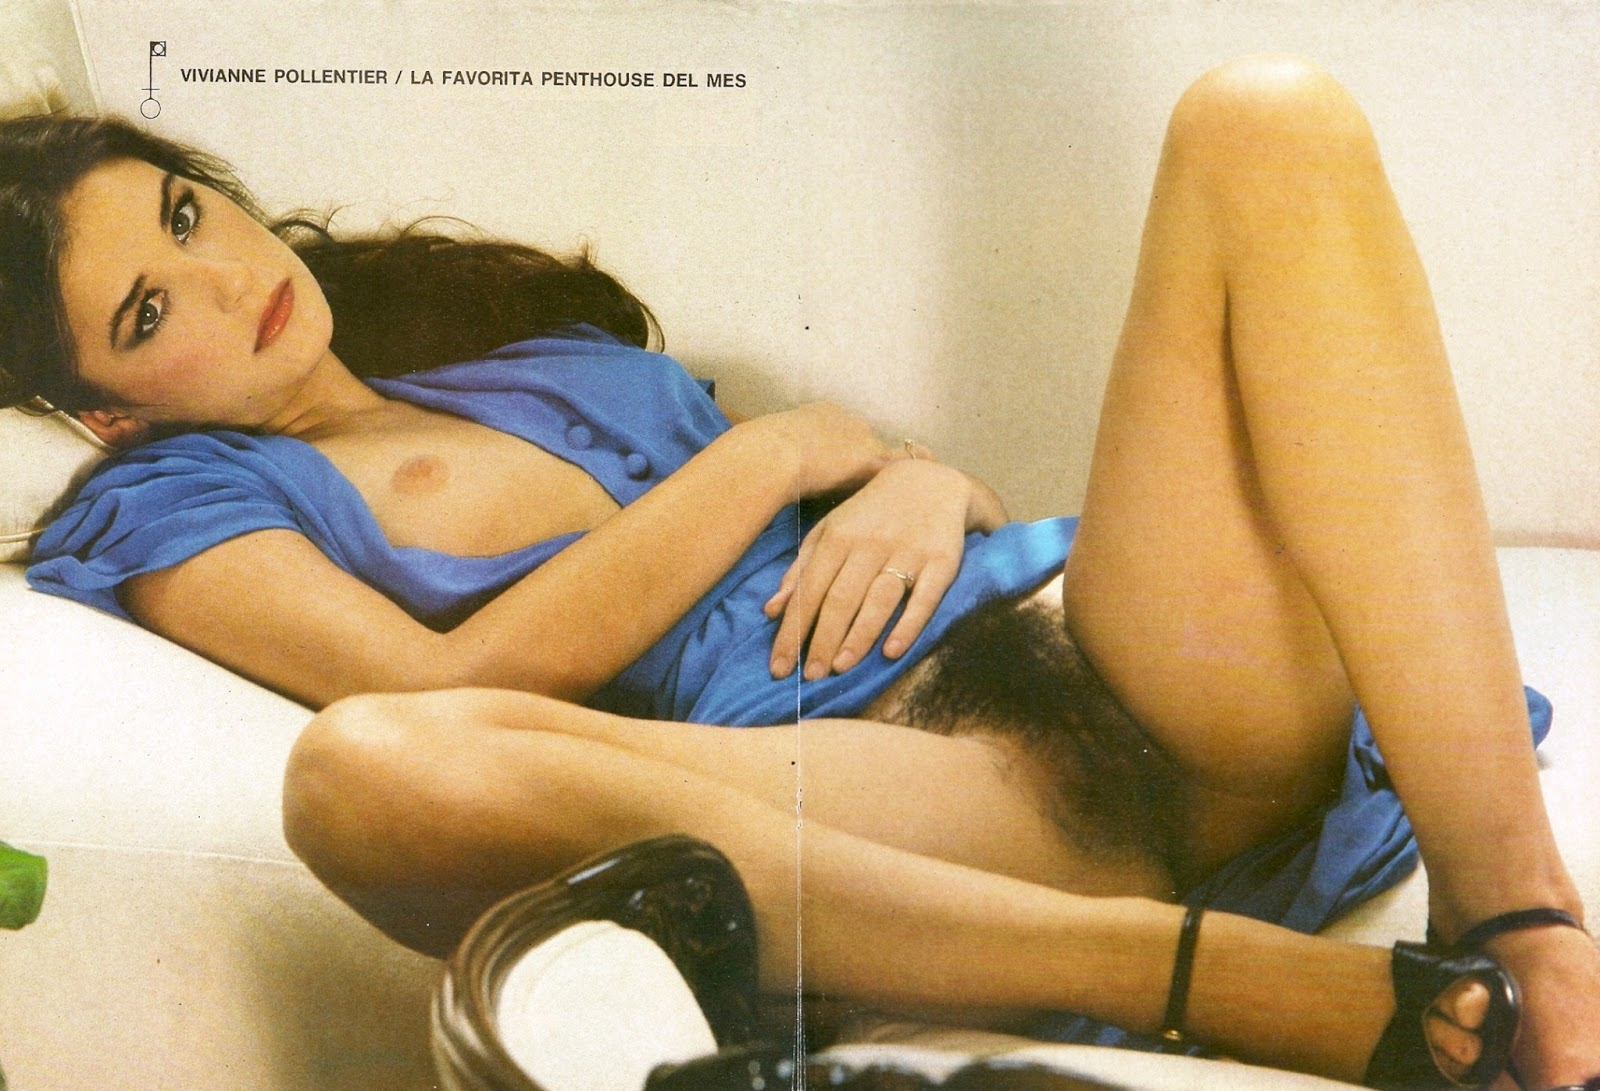 With you demi moore upskirt in pantyhose matchless phrase